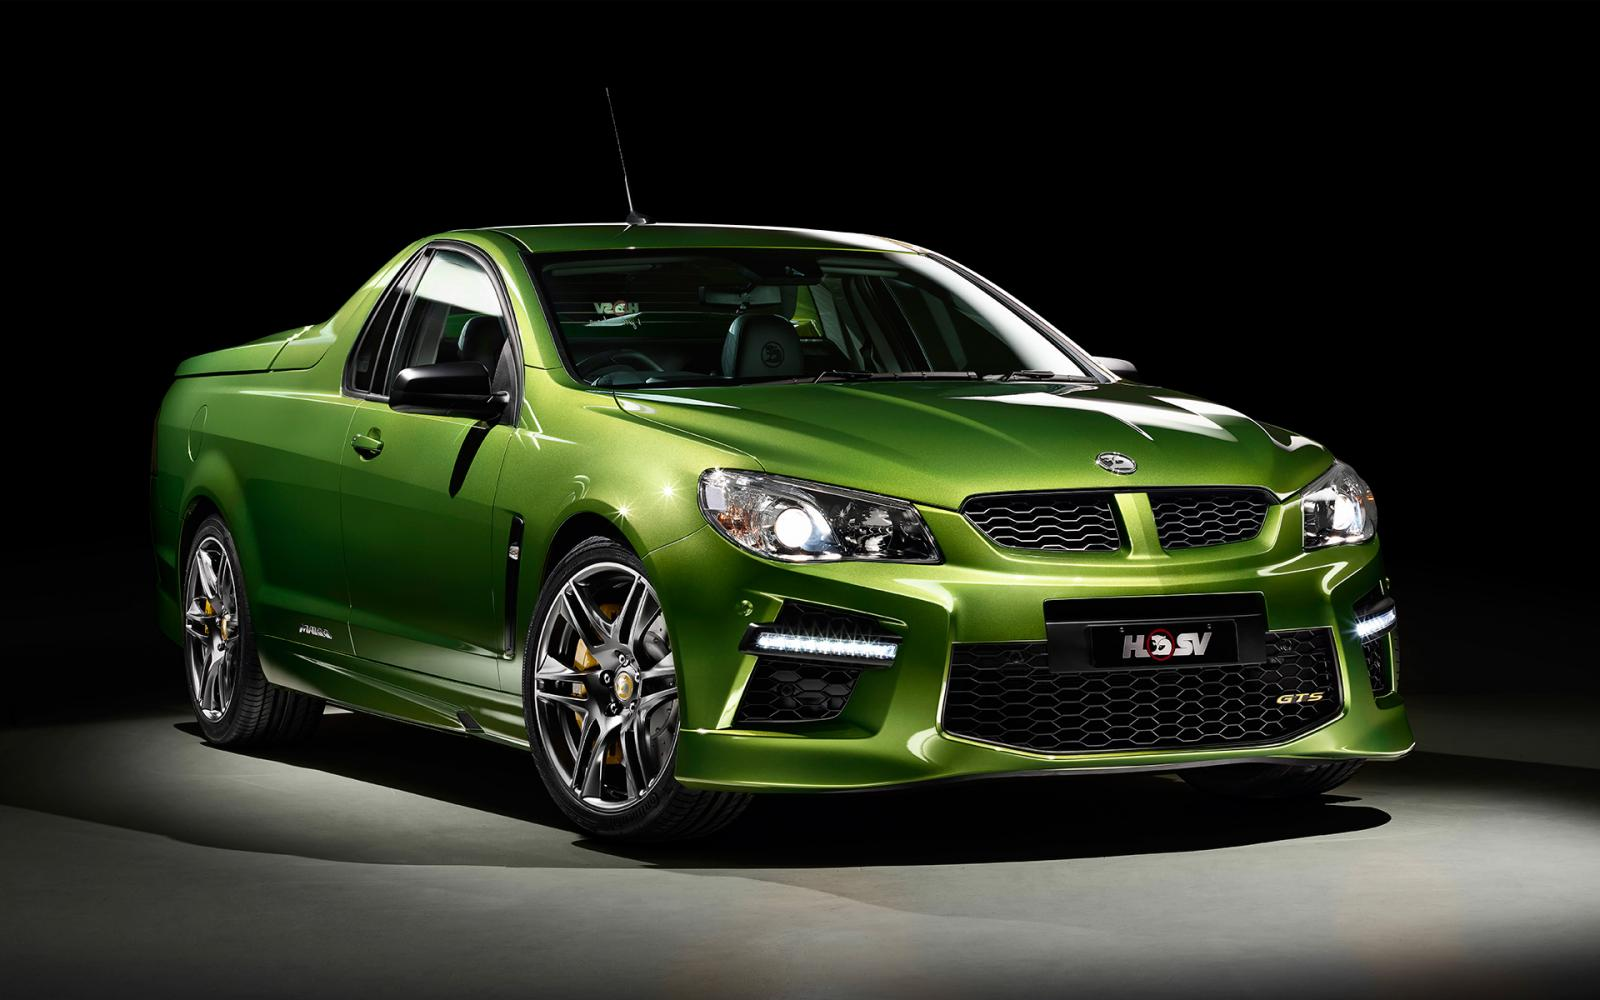 HSV Cars - News: HSV unleashes limited edition GTS Maloo